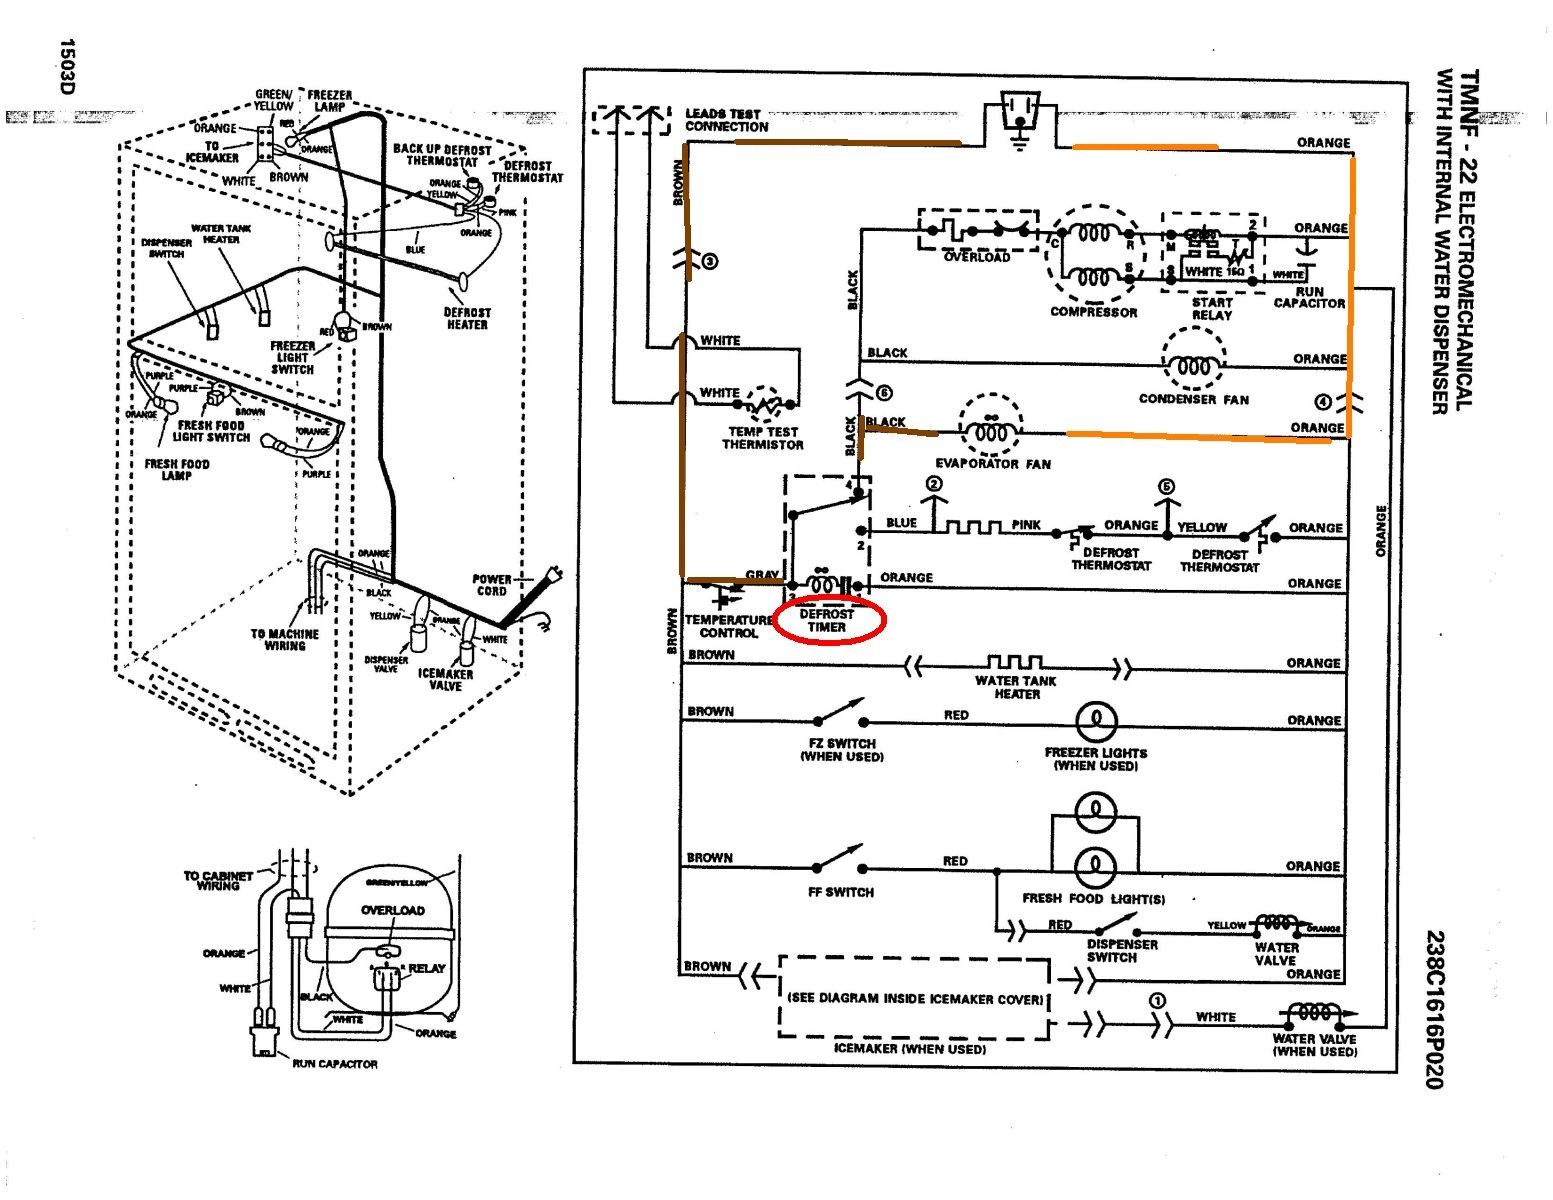 dishwasher electrical diagram wiring diagram schematic